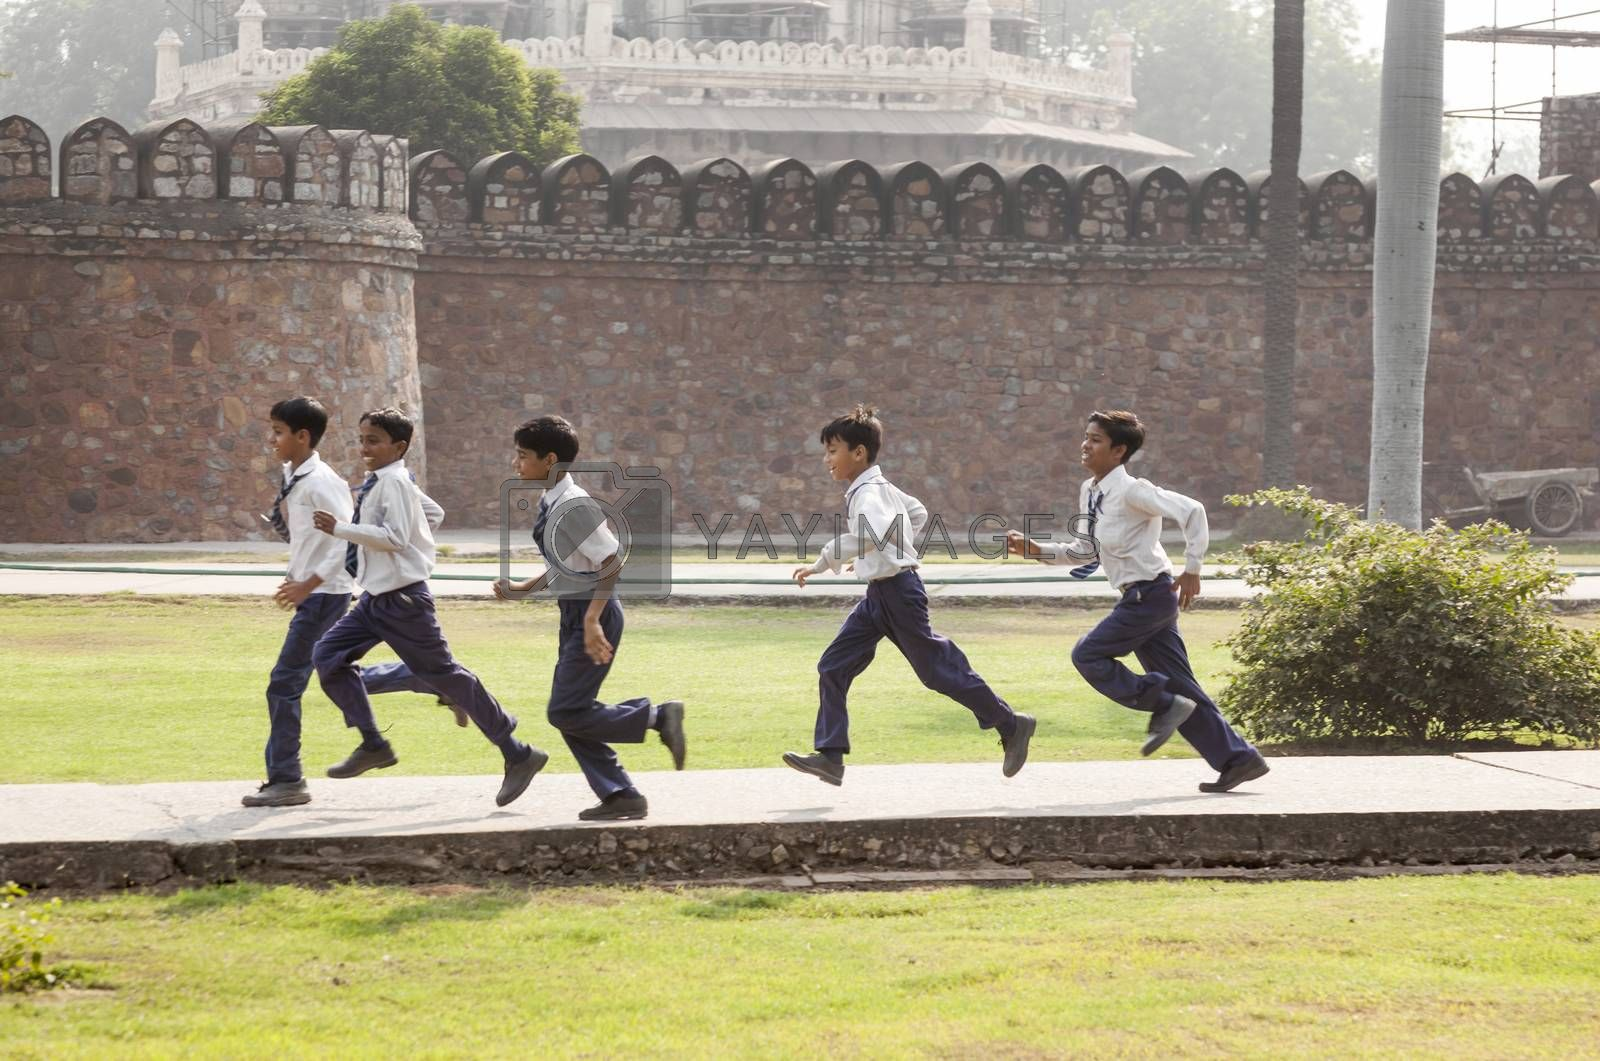 DELHI, INDIA NOV 11, 2011: school class visits Humayuns tomb in Delhi, India. The boys in school uniform have fun posing for a foto. Schools visit the famous landmarks as part of national education.